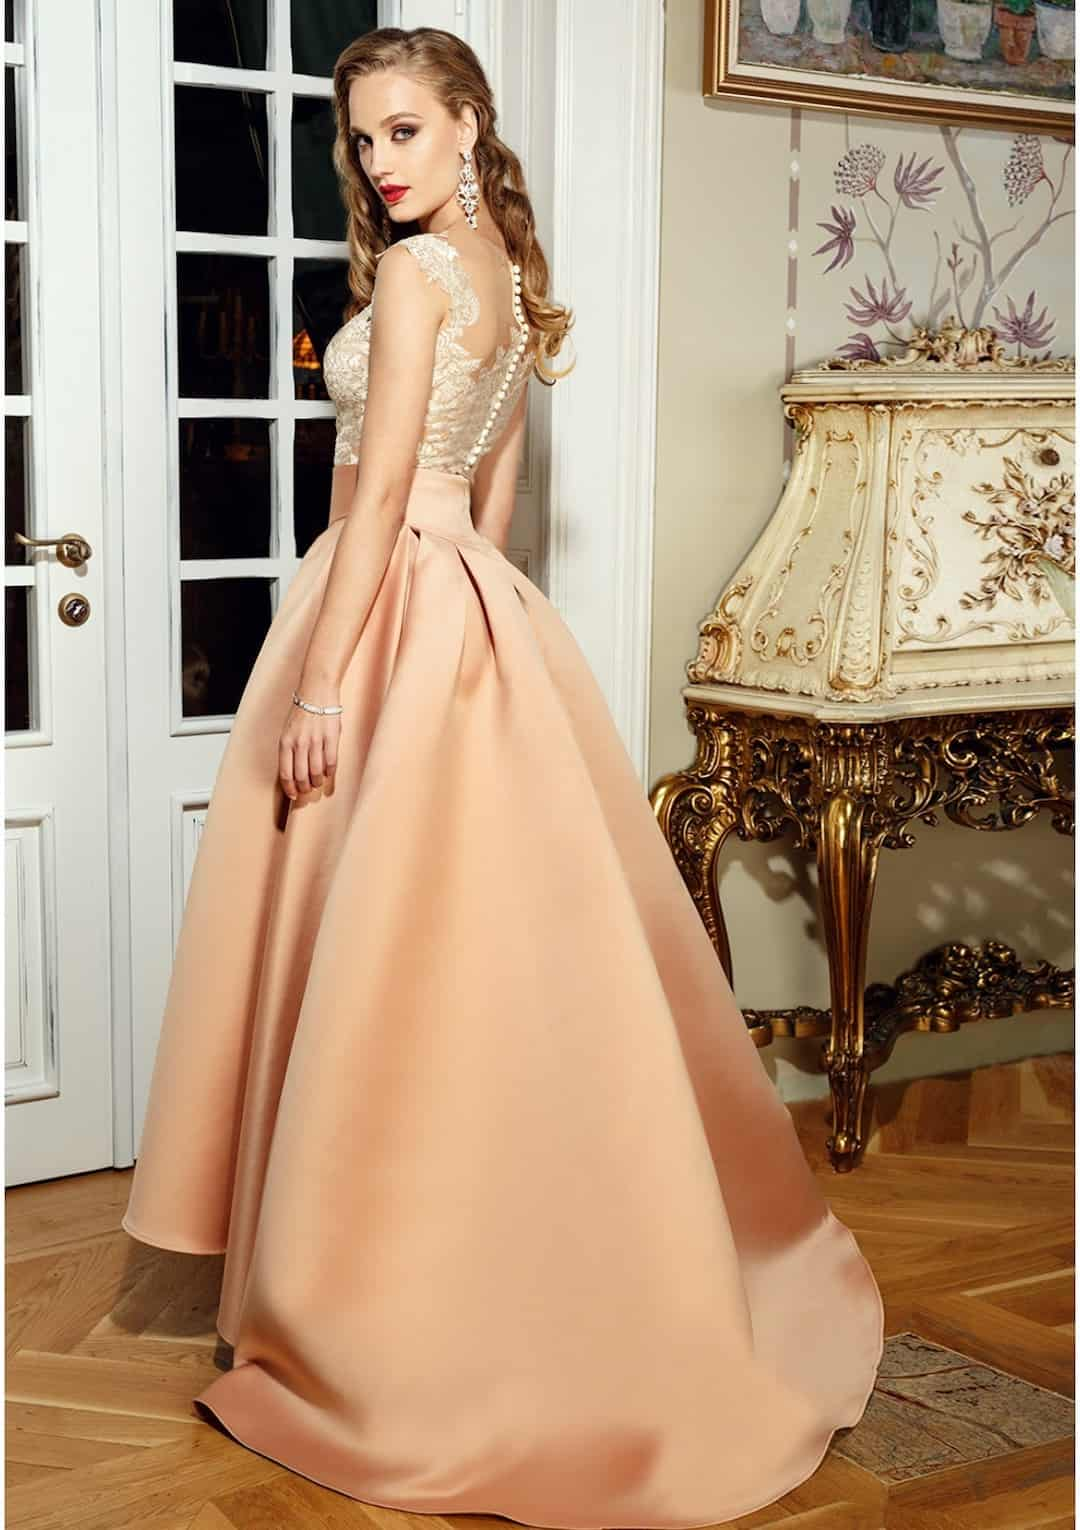 23d1684aca96 This gold silk-taffeta skirt is a statement piece for the wedding party  season. Mixing it with a flattering bodice in lace